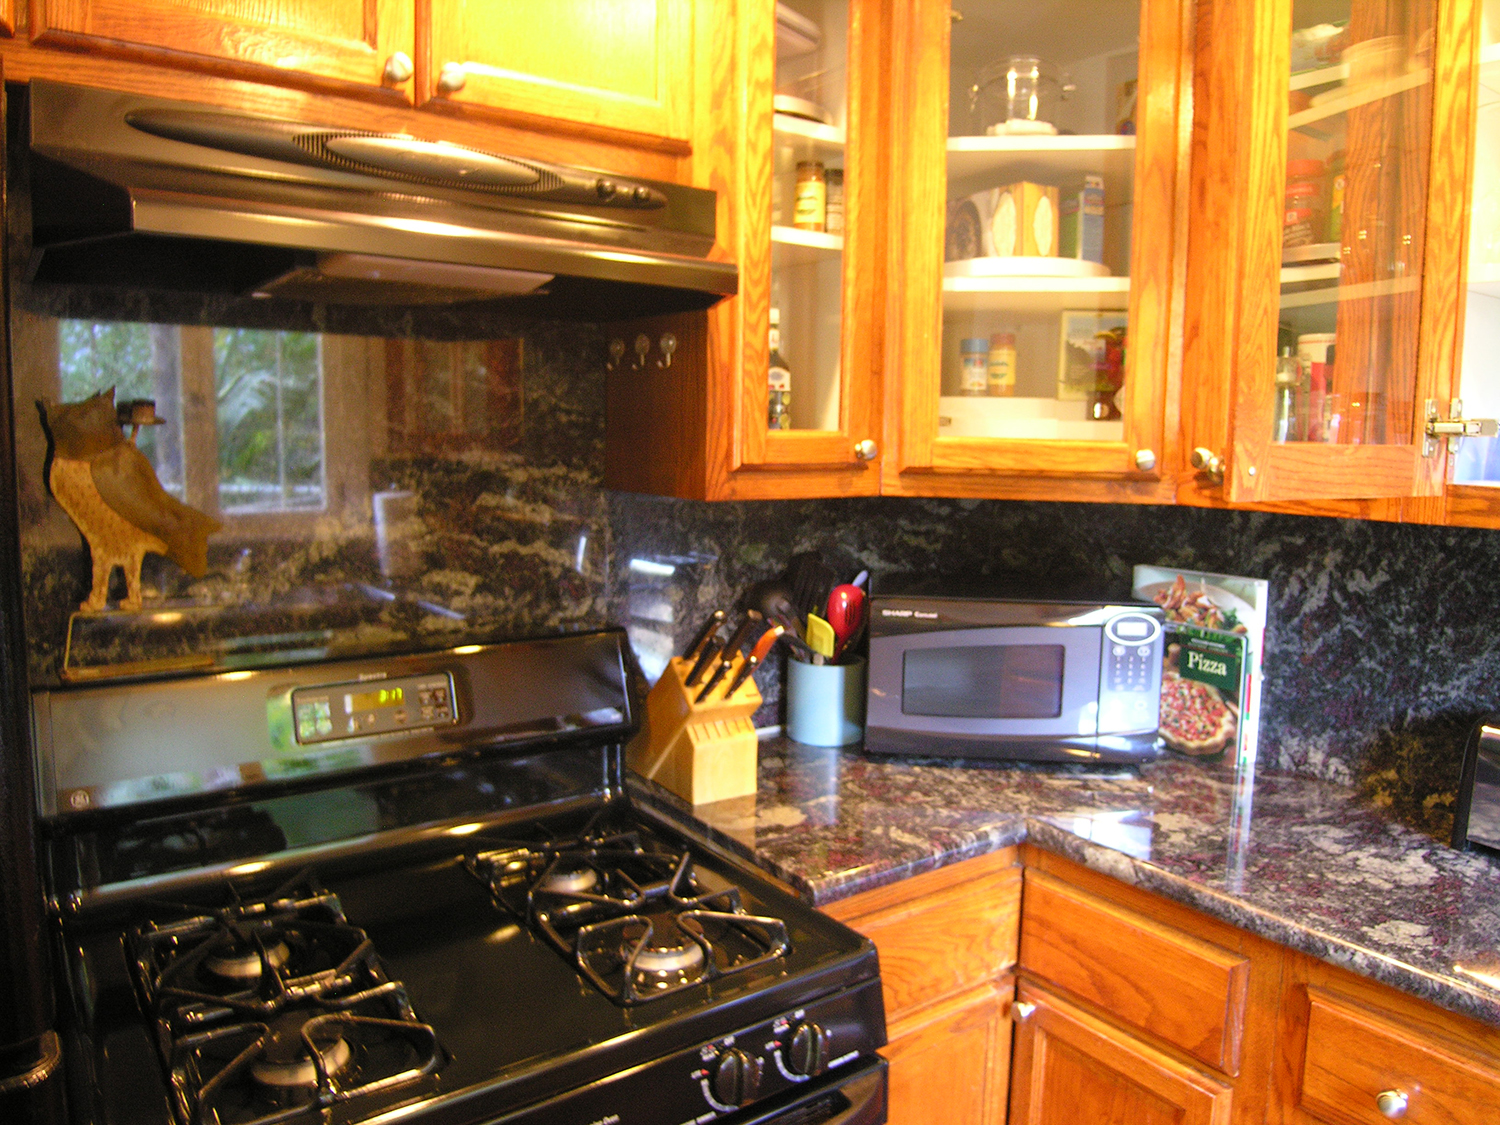 C Kitchen Stove cabinet_1500.jpg